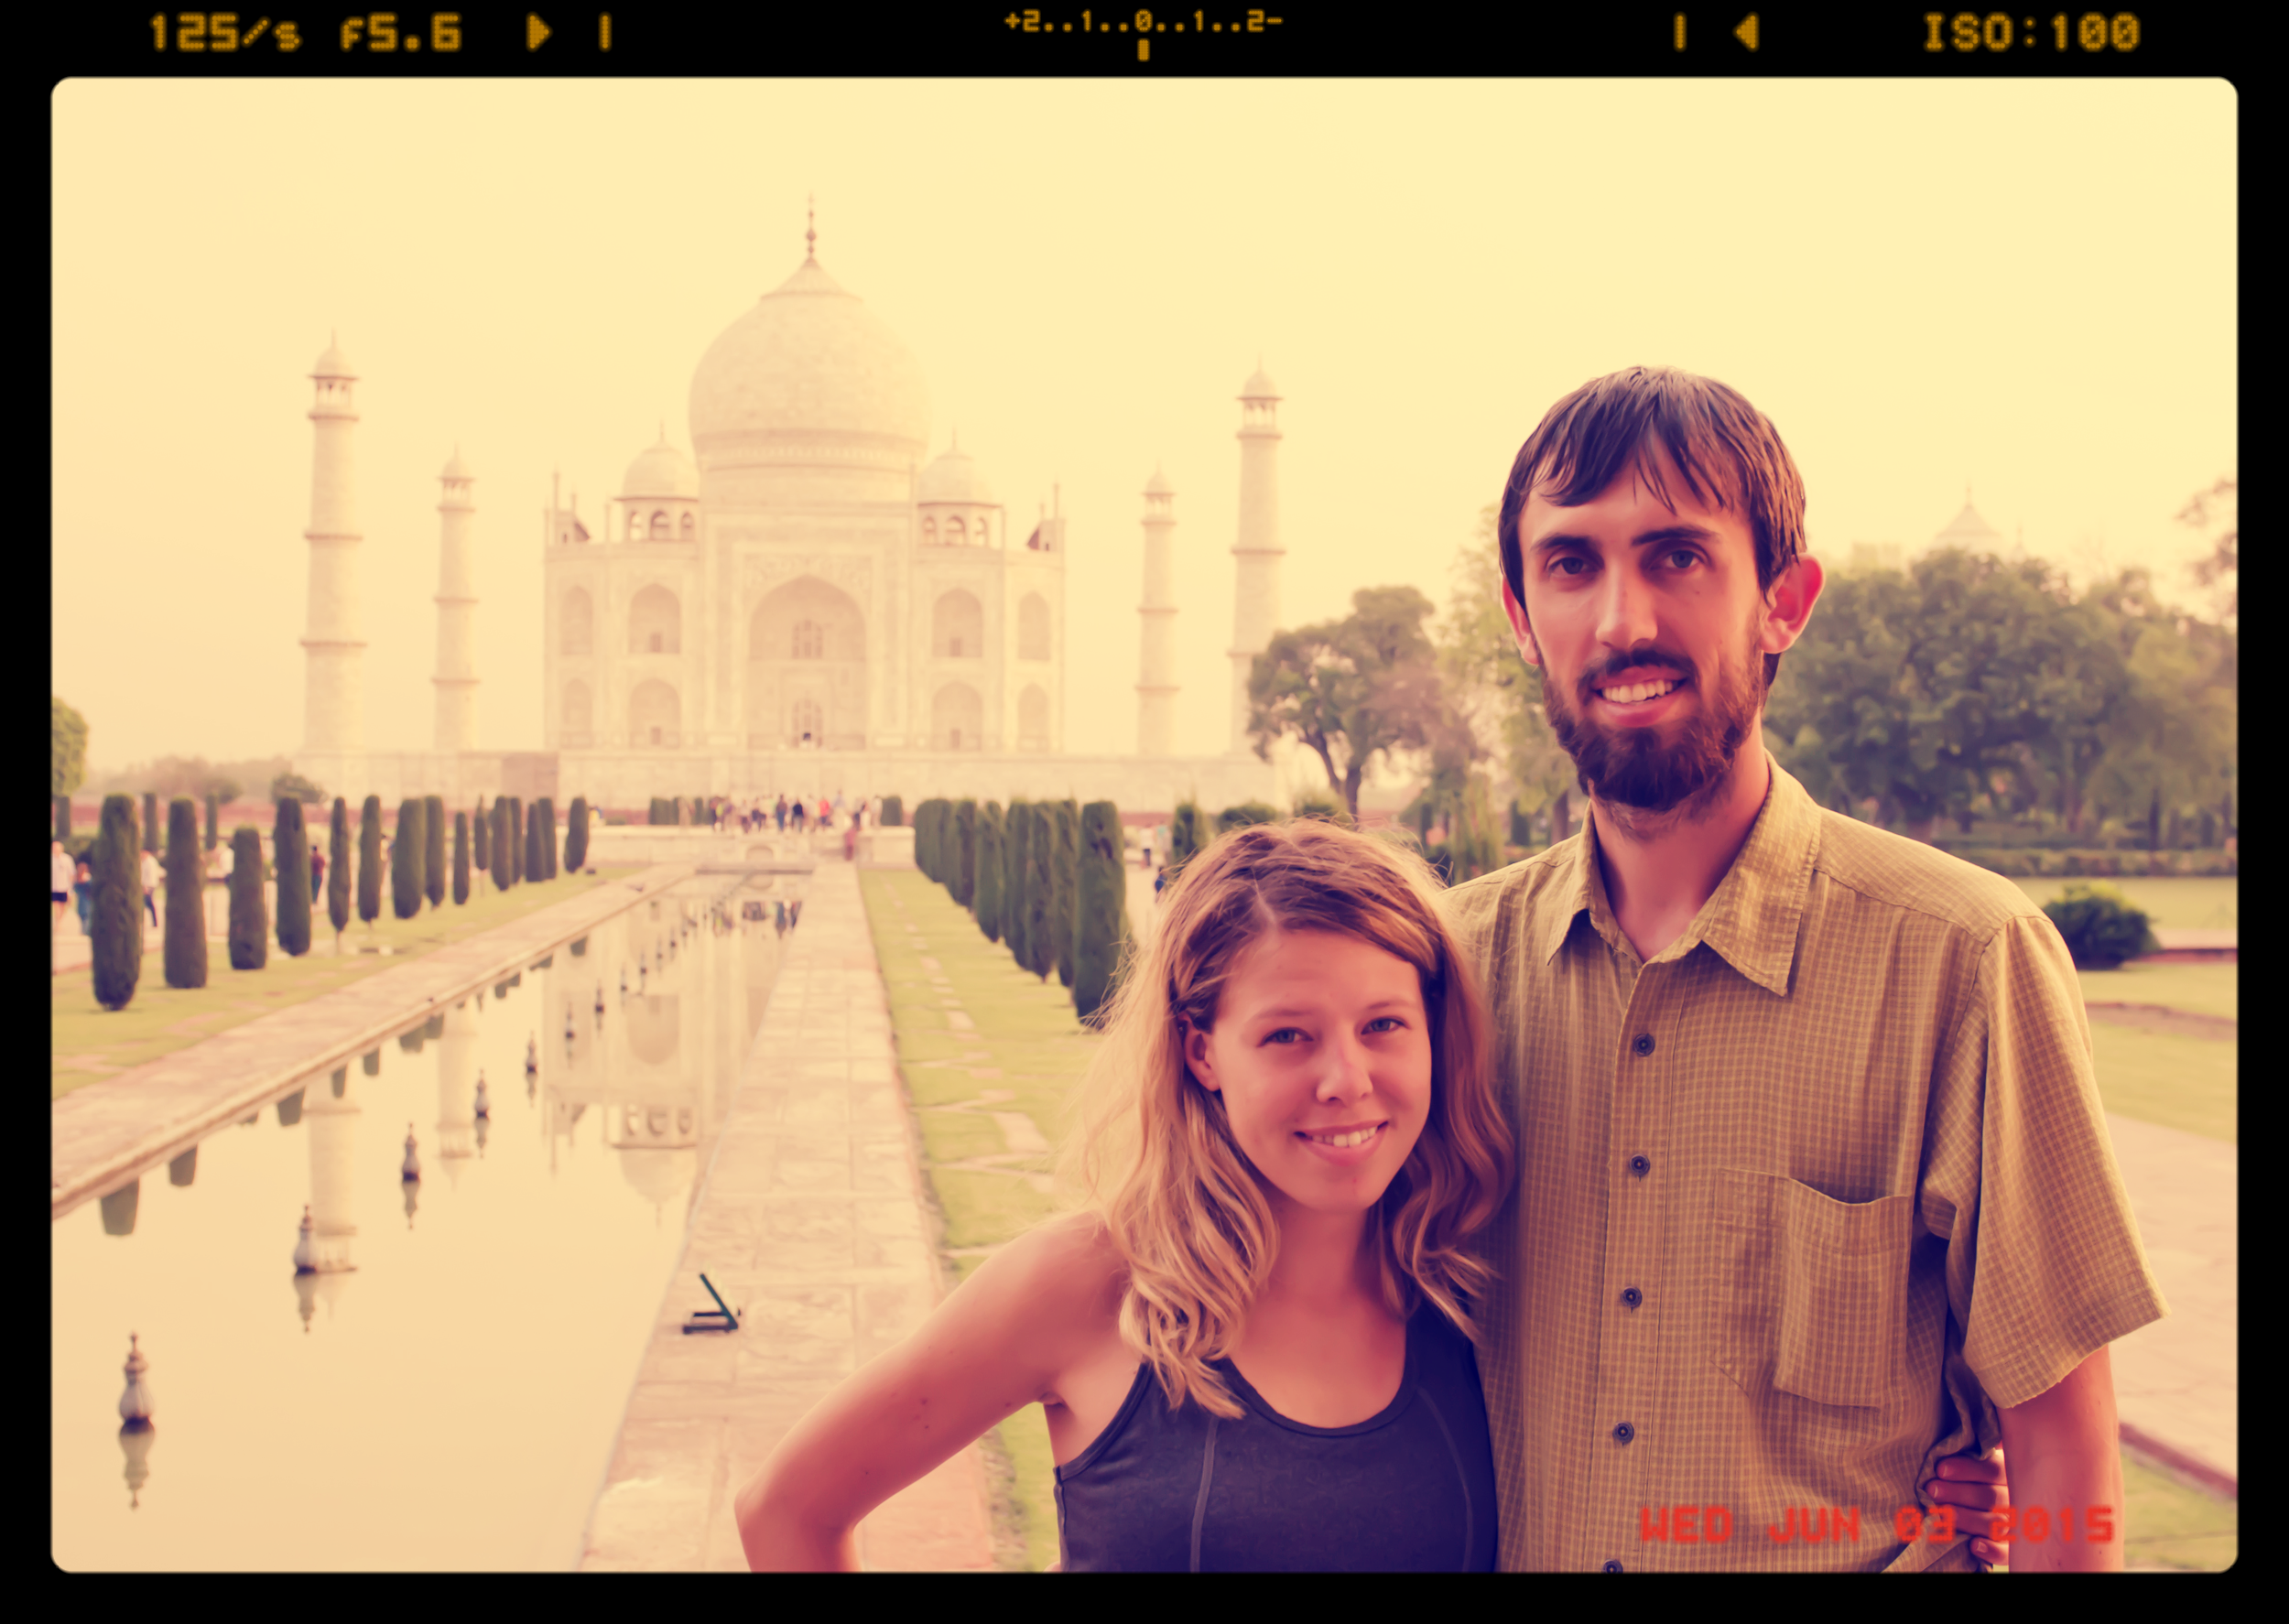 Experiencing the Taj Mahal for the first time